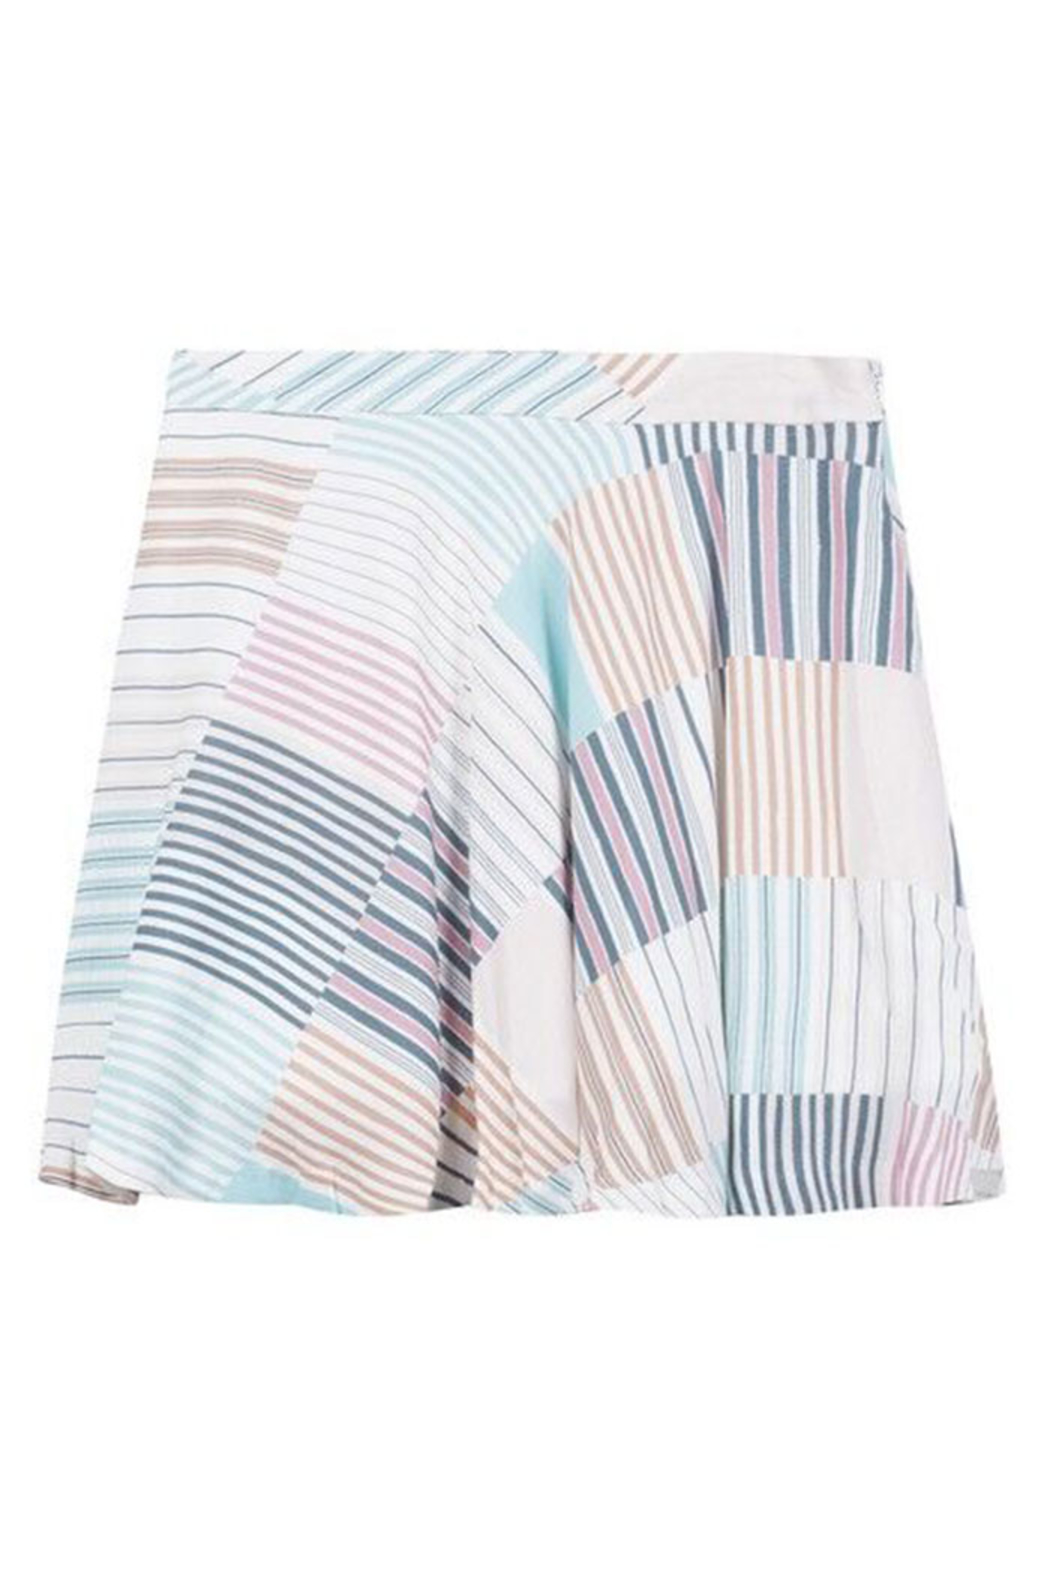 Paul Smith 3-6 Years Striped Skirt - Main Image